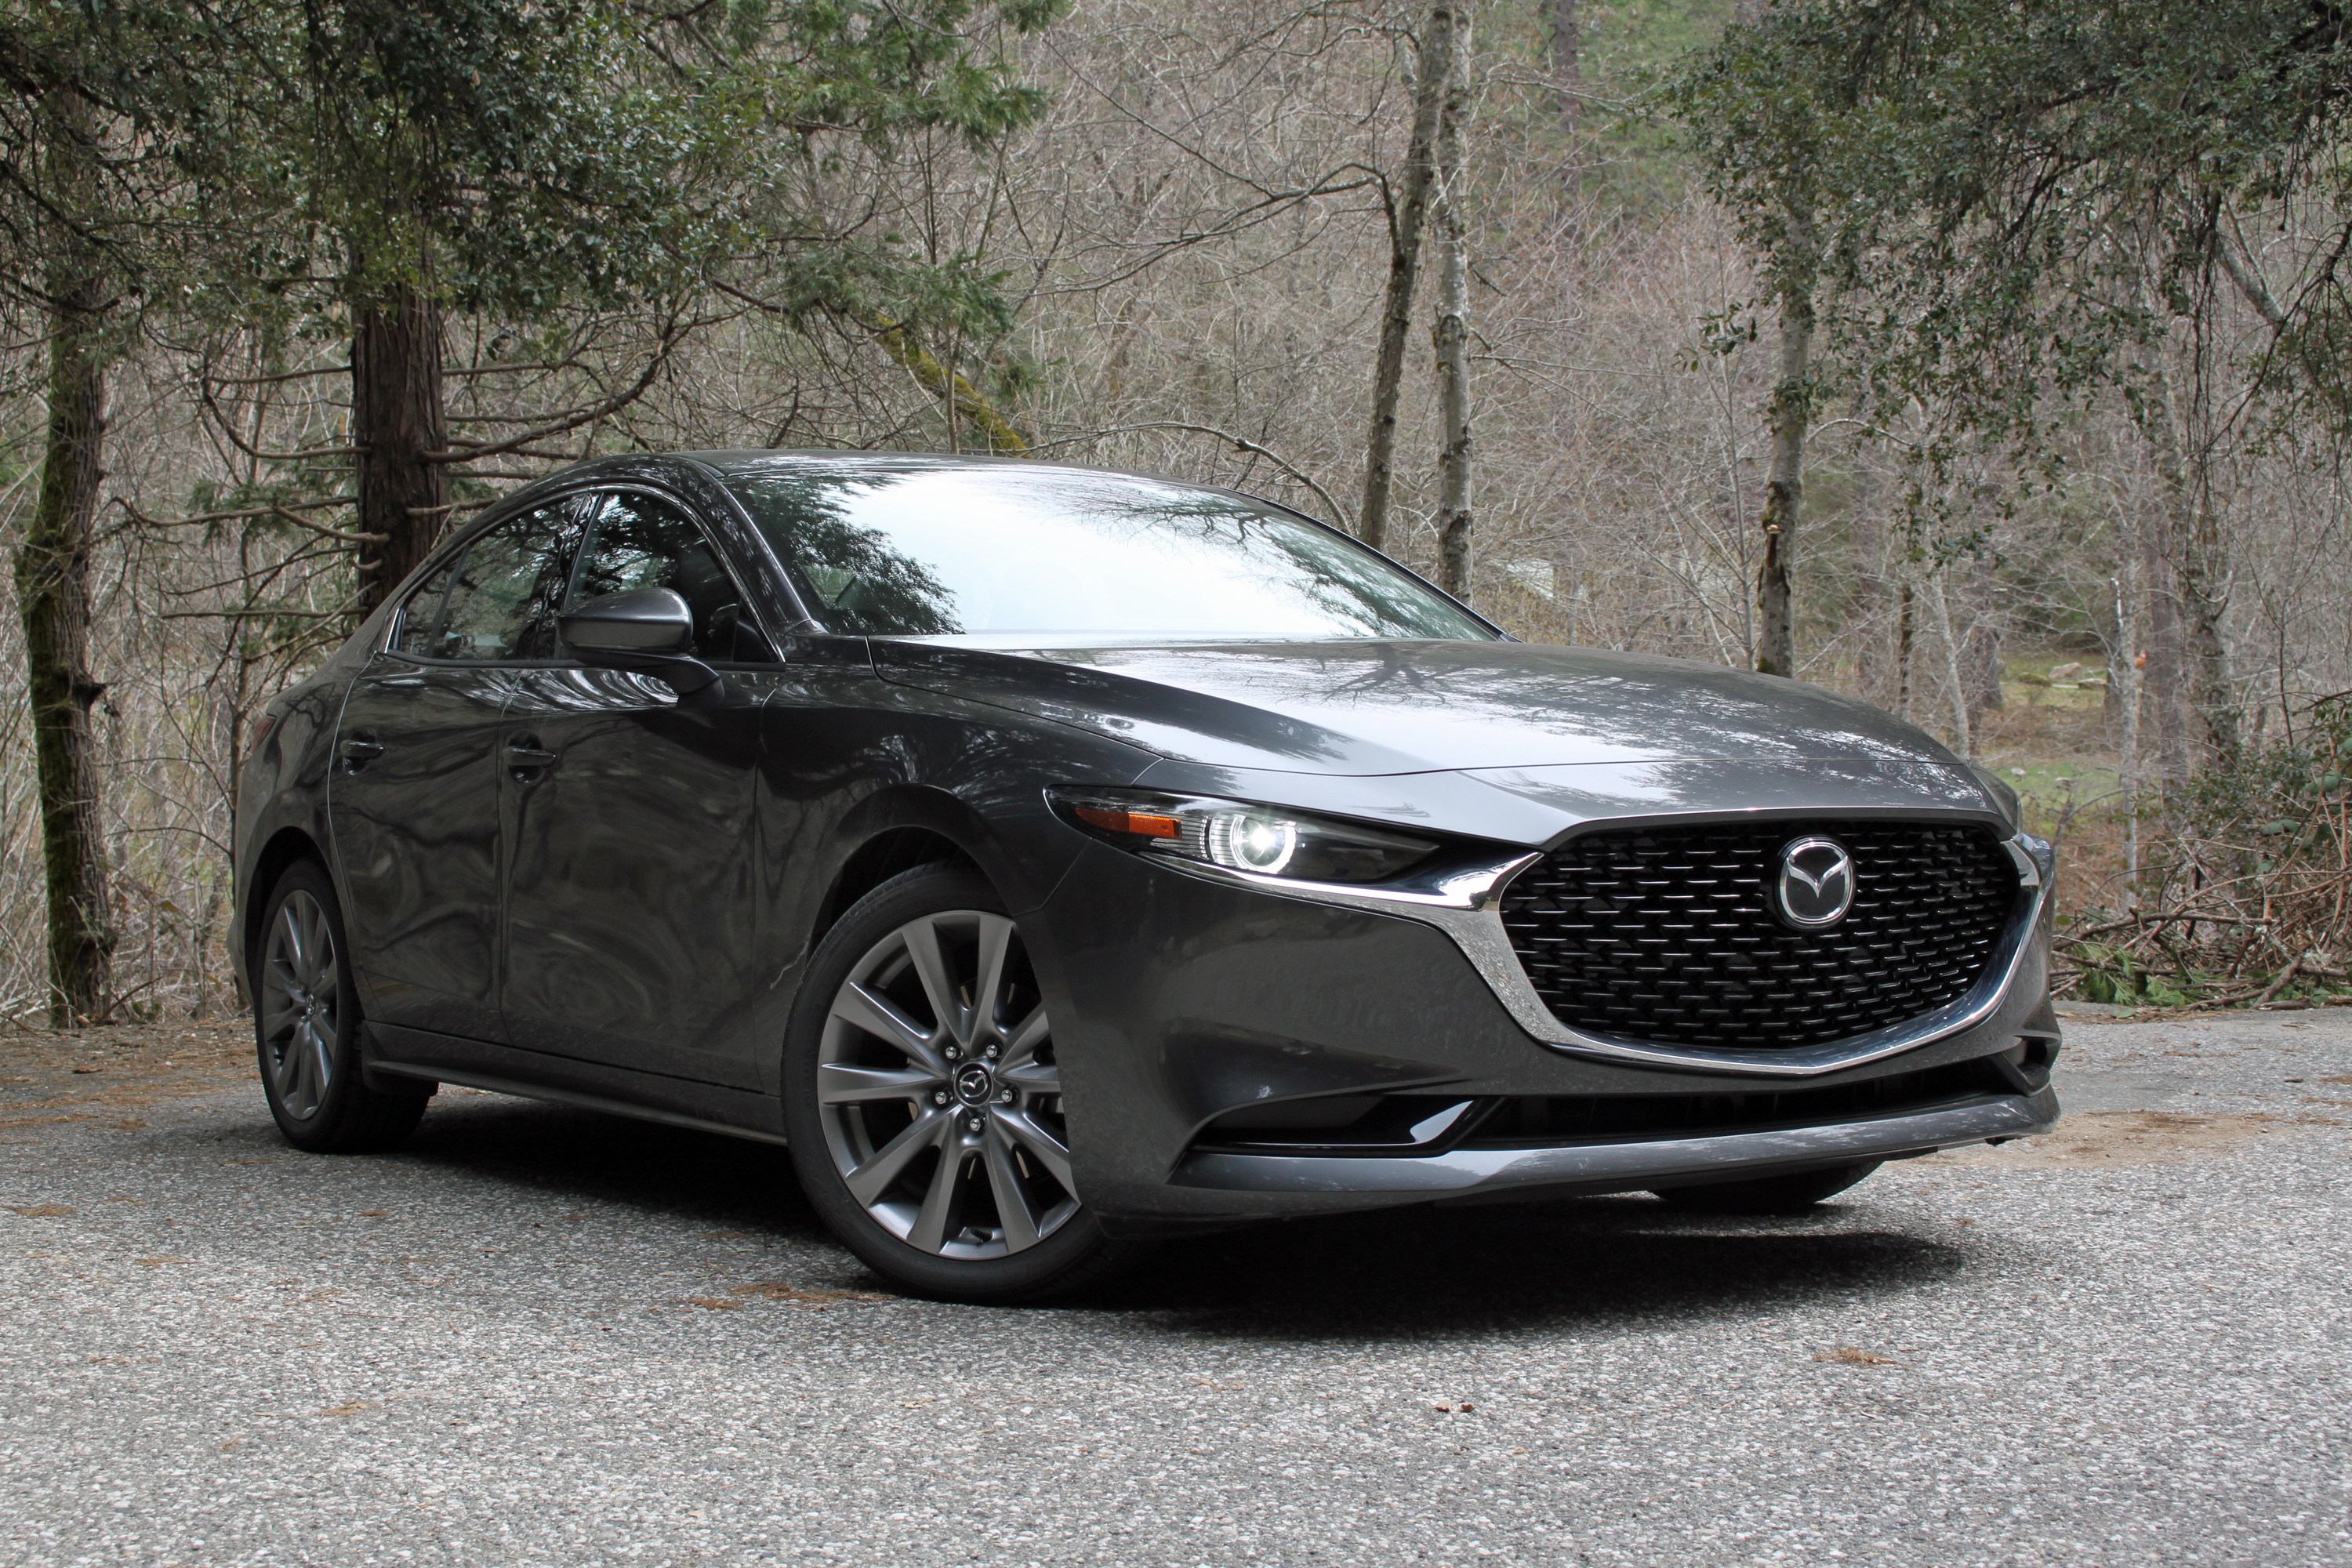 2019 Mazda3 Review: We Drive the AWD Model, Hatch and Sedan